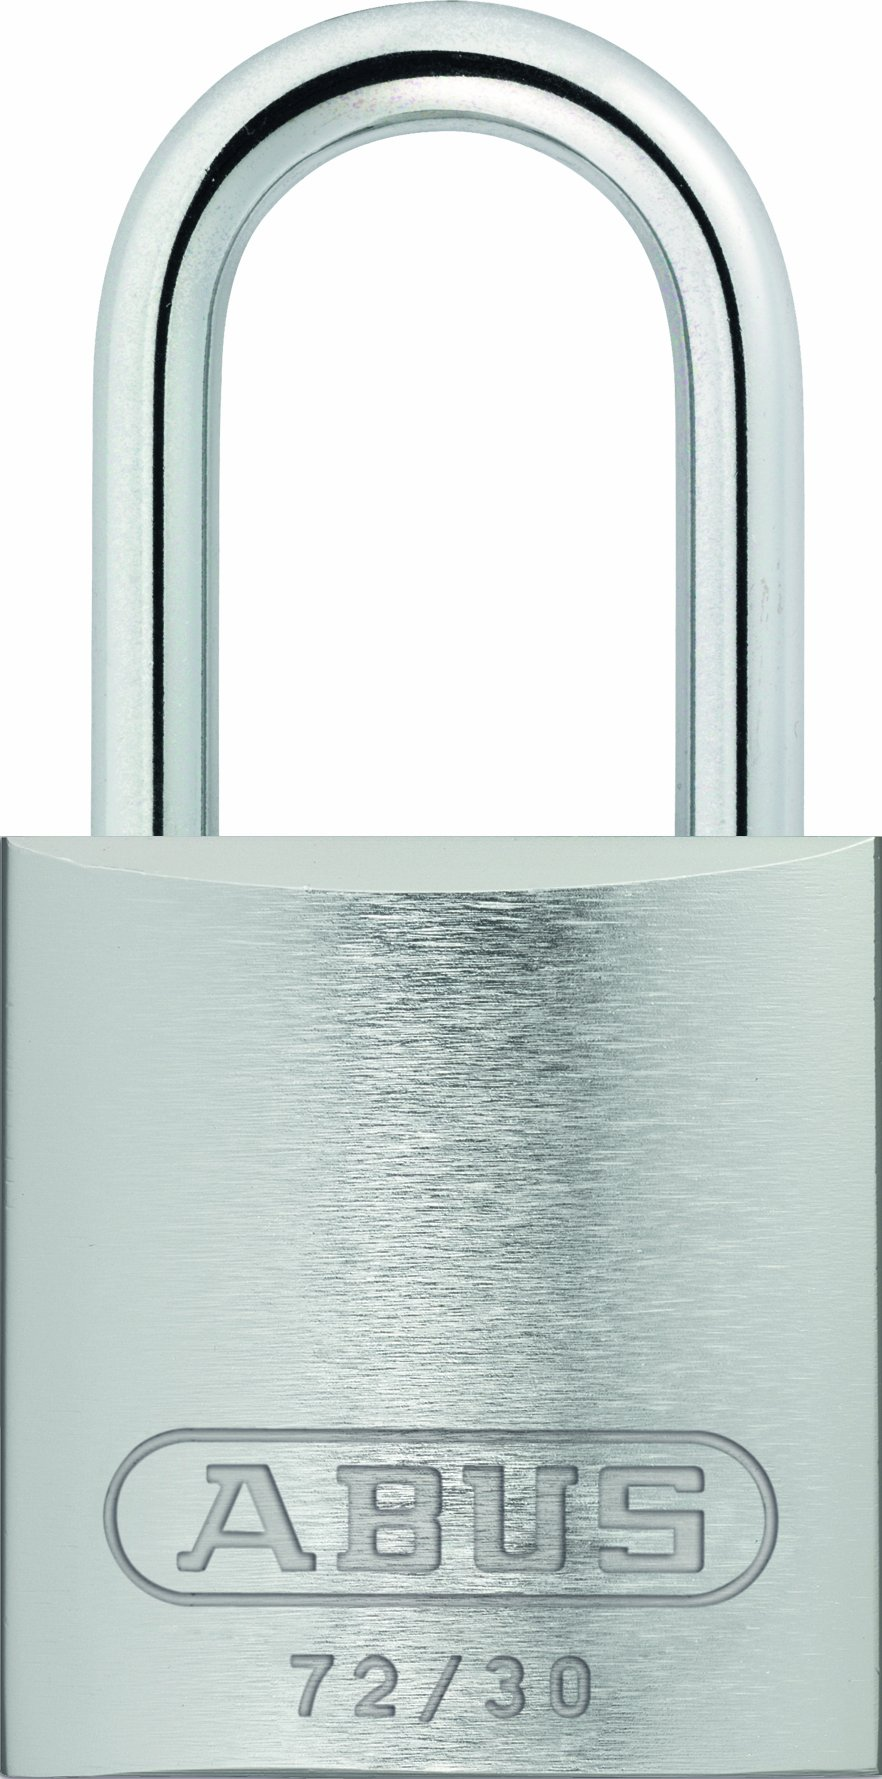 ABUS 72/30 KD Safety Lockout Aluminum Keyed Different Padlock, Silver